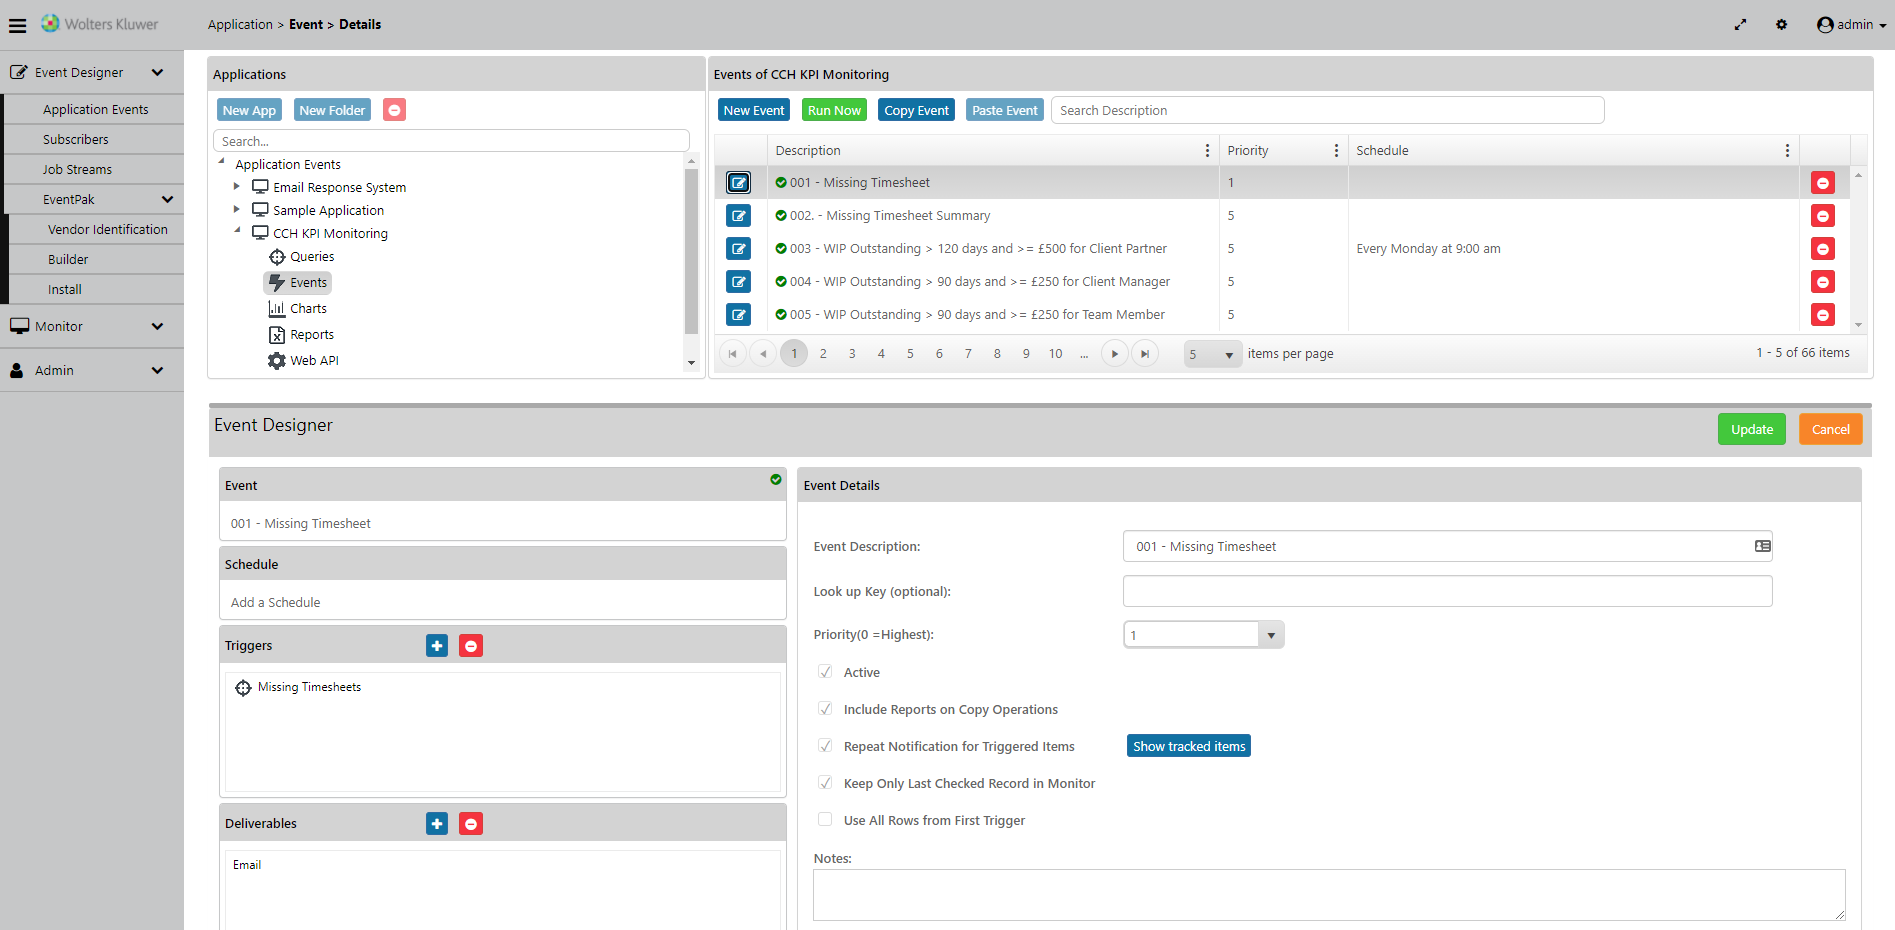 CCH KPI Monitoring new cloud interface